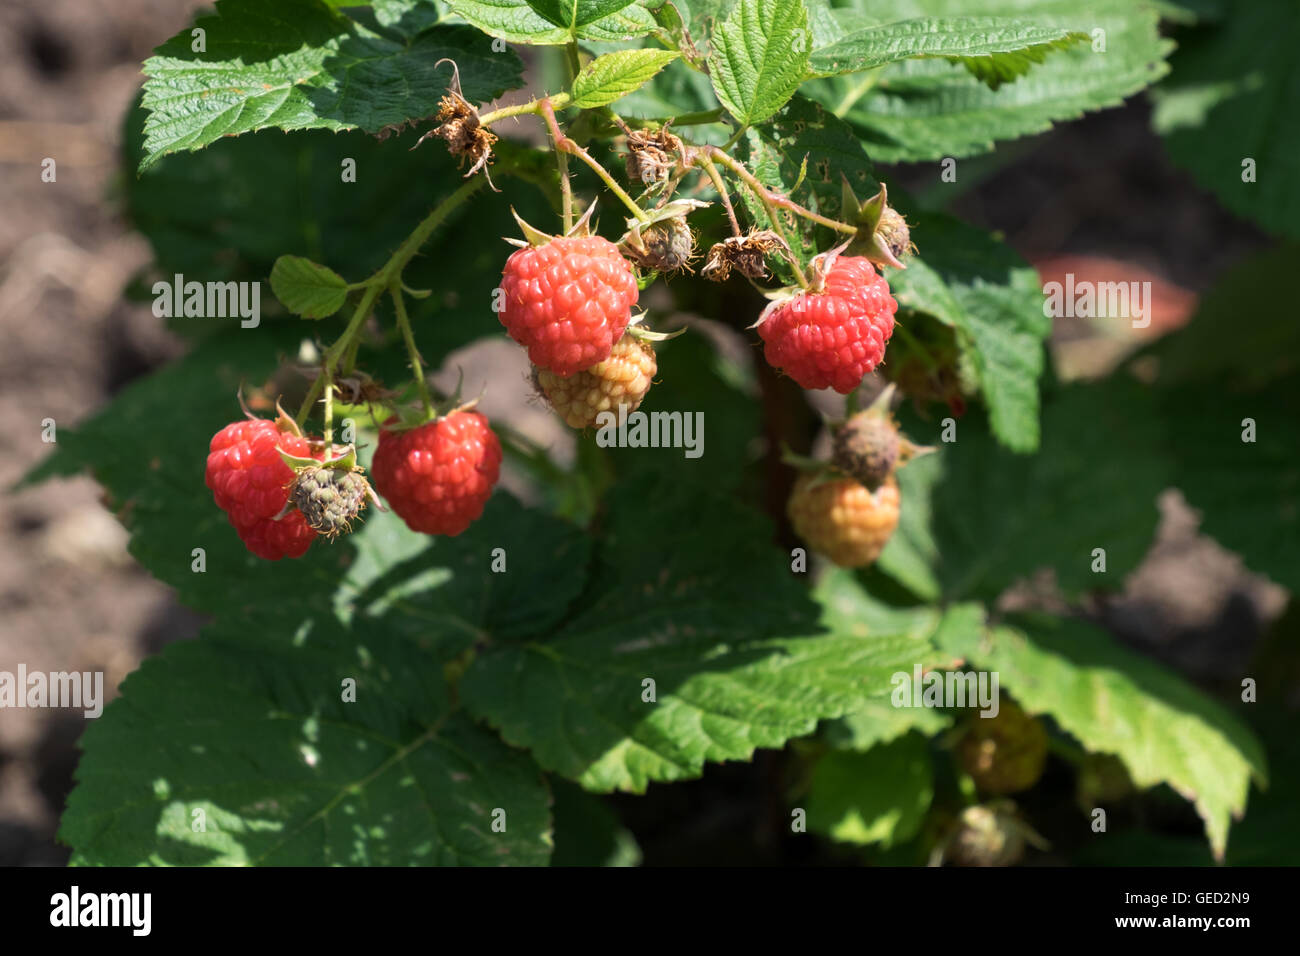 Raspberries in early July on a bush at a northern Illinois farm. - Stock Image